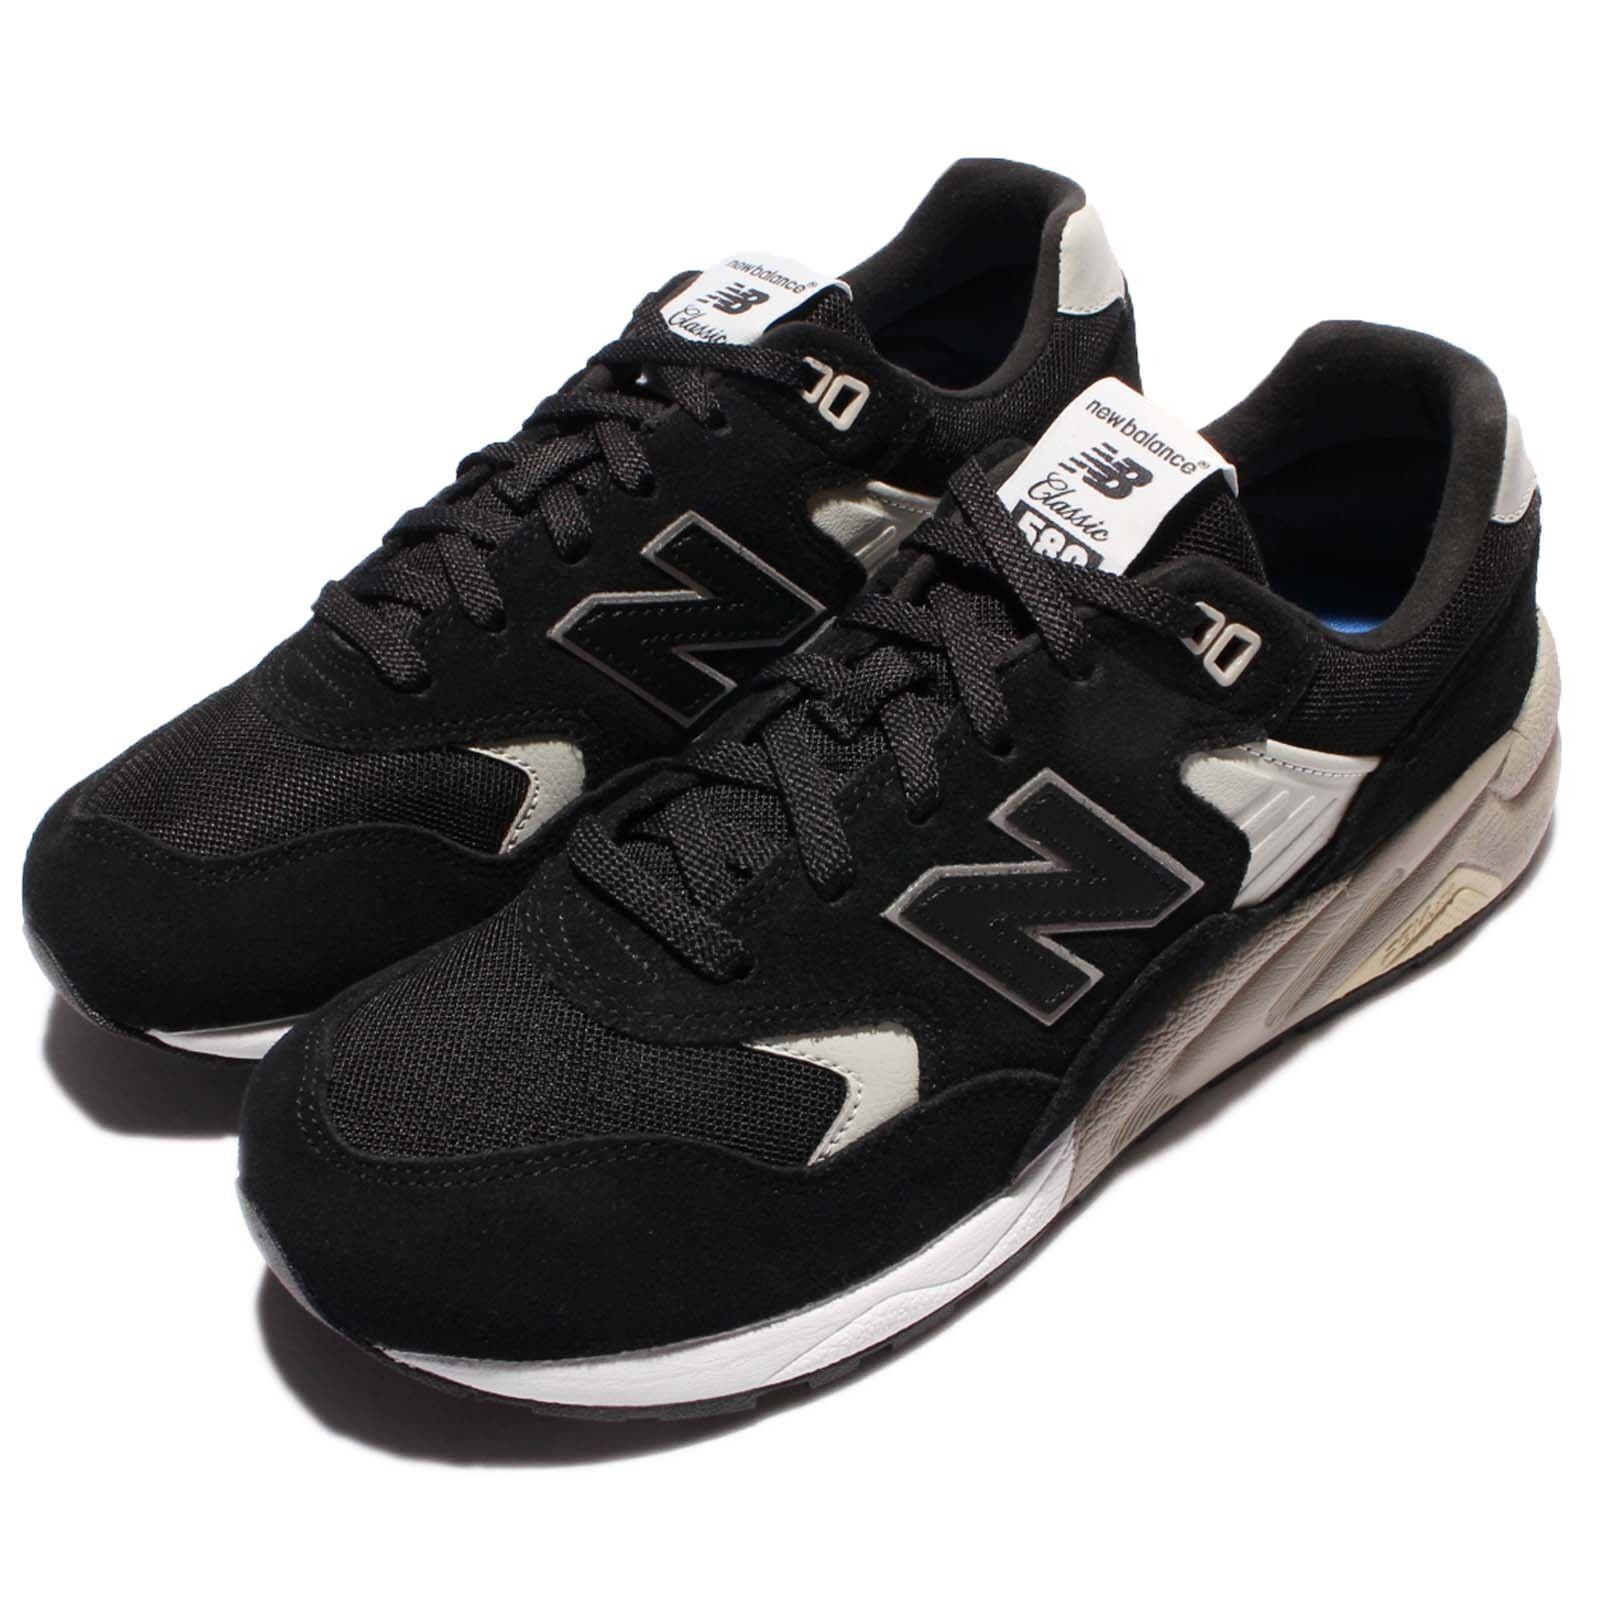 New Men Balance MRT580BN D Black Grey Suede Men New Running Shoes Sneakers MRT580BND 2ecad1